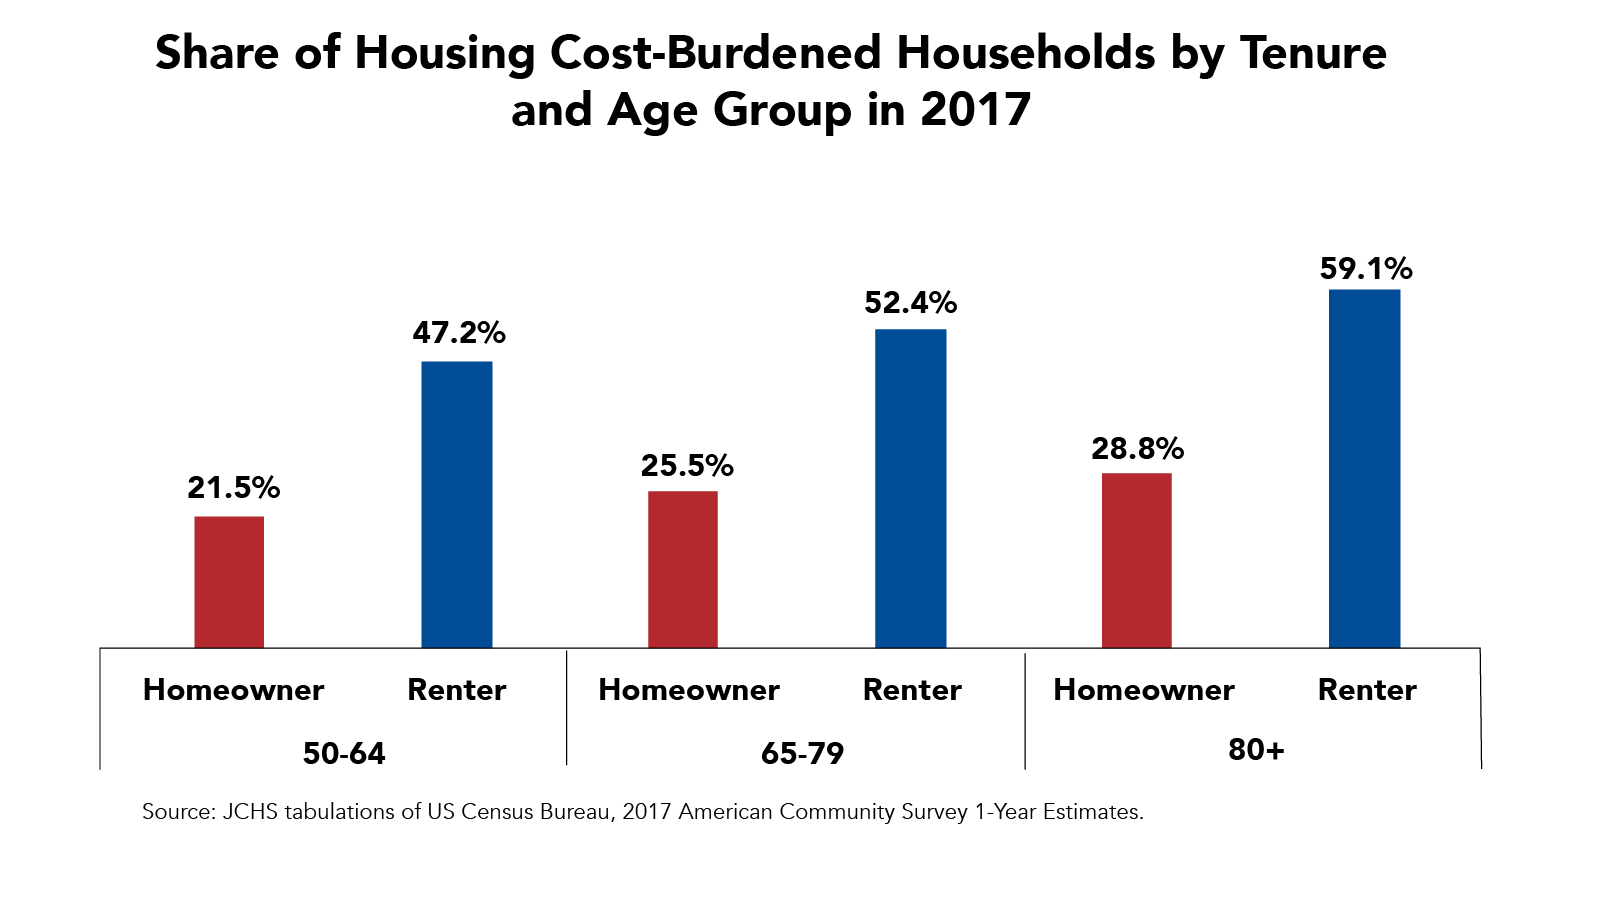 Share of Housing Cost-Burdened Households by Tenure and Age Group in 2017